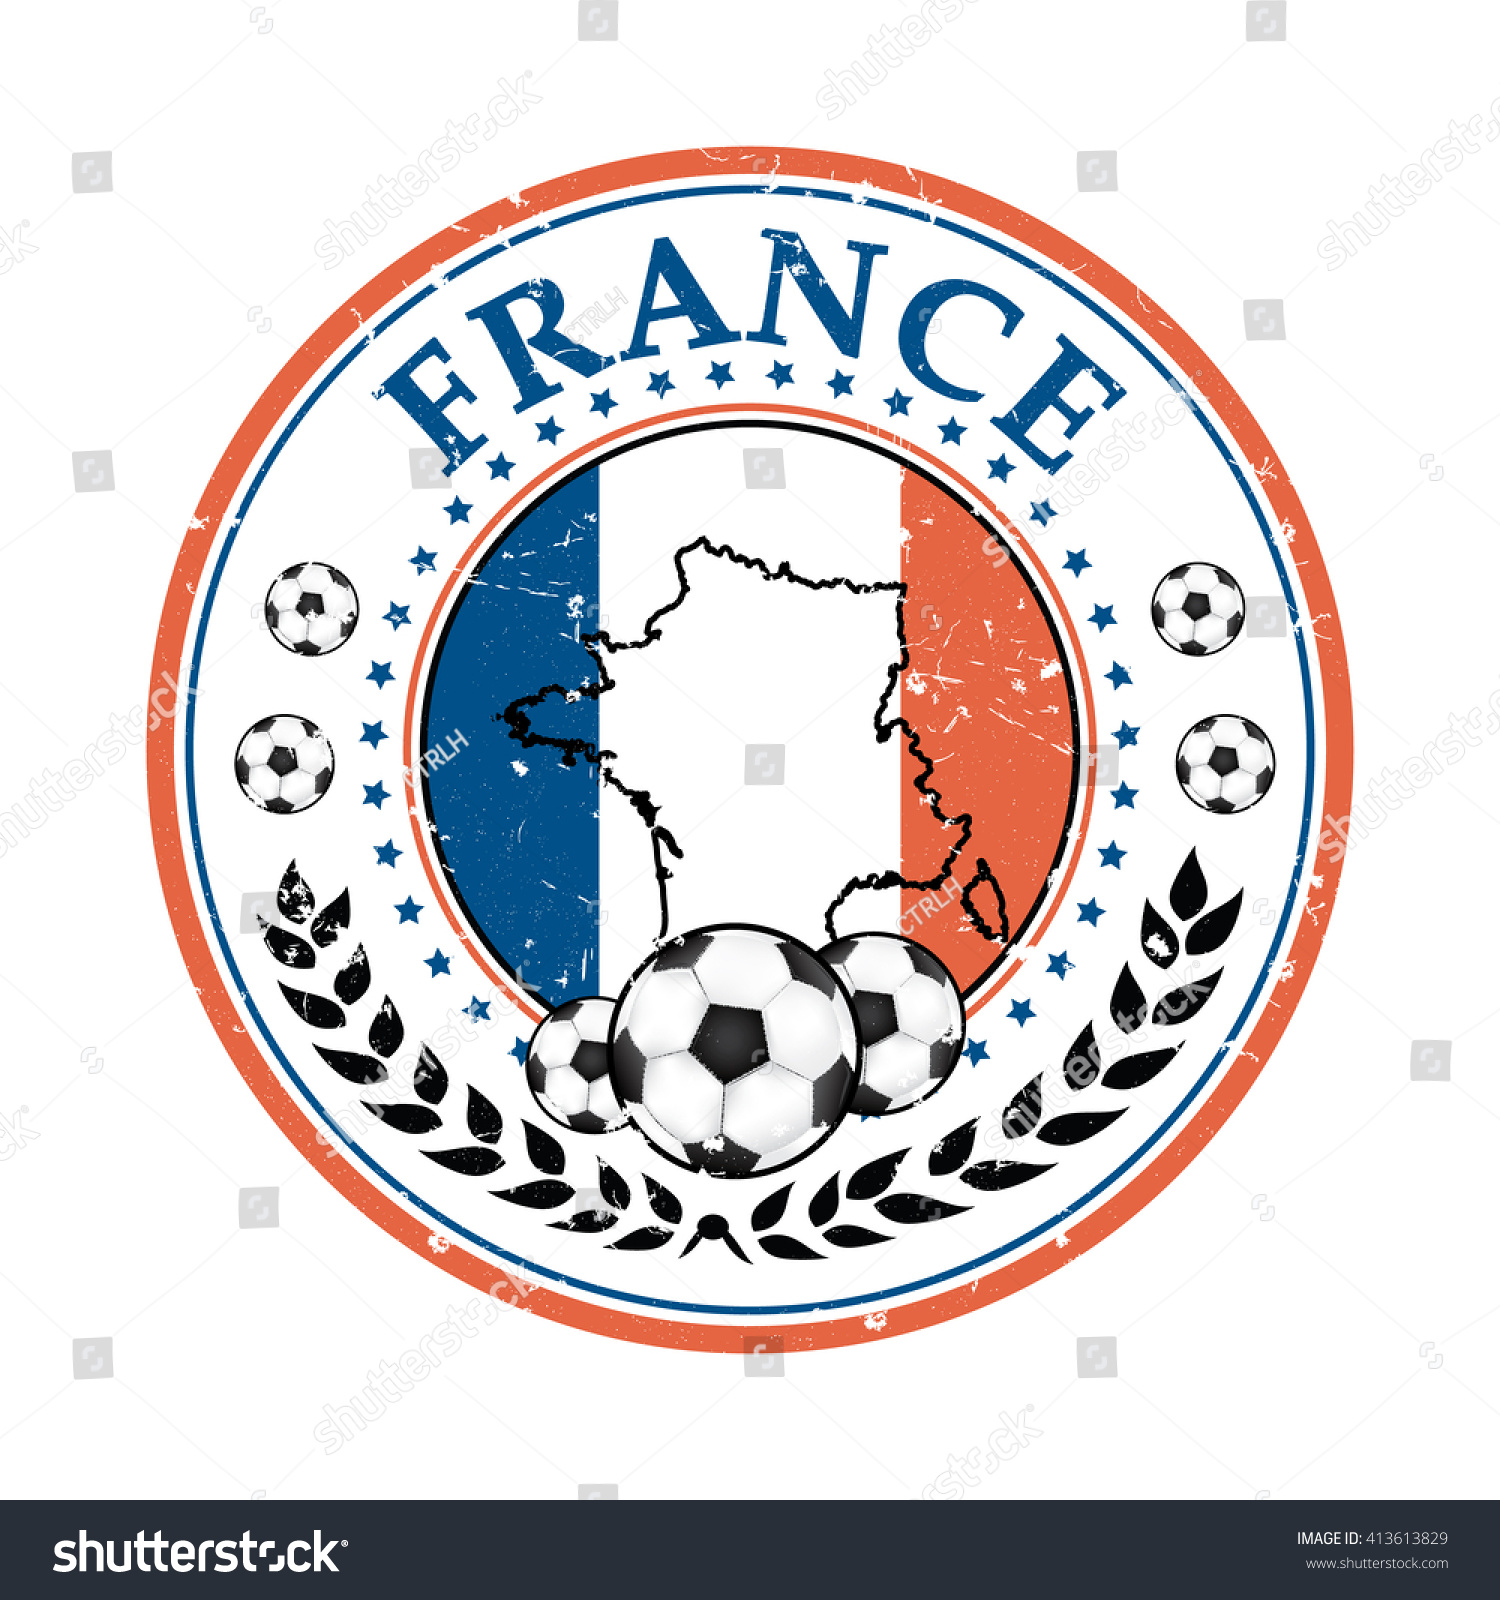 Printable Grunge France Soccer Label Containing Stock